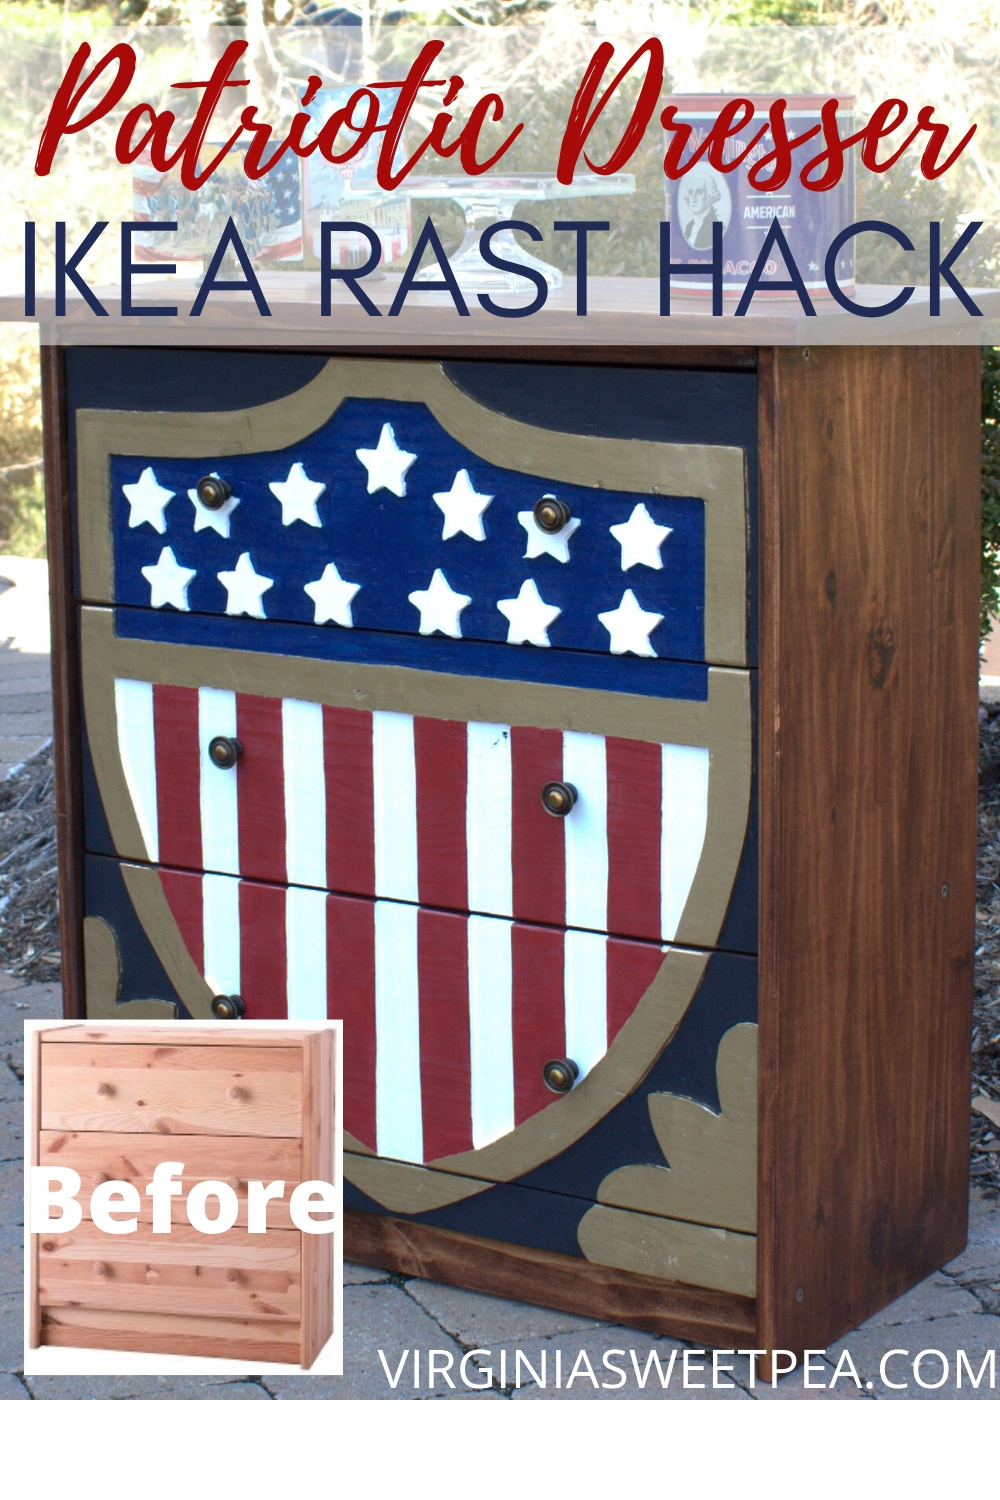 Ikea Rast Hack...Patriotic Dresser - A plain Jane Ikea Rast chest is transformed into a patriotic dresser.  This $39.99 chest now looks like a million bucks!  #ikearast #ikearastchest #ikeahack #patrioticdresser #chestmakeover  via @spaula